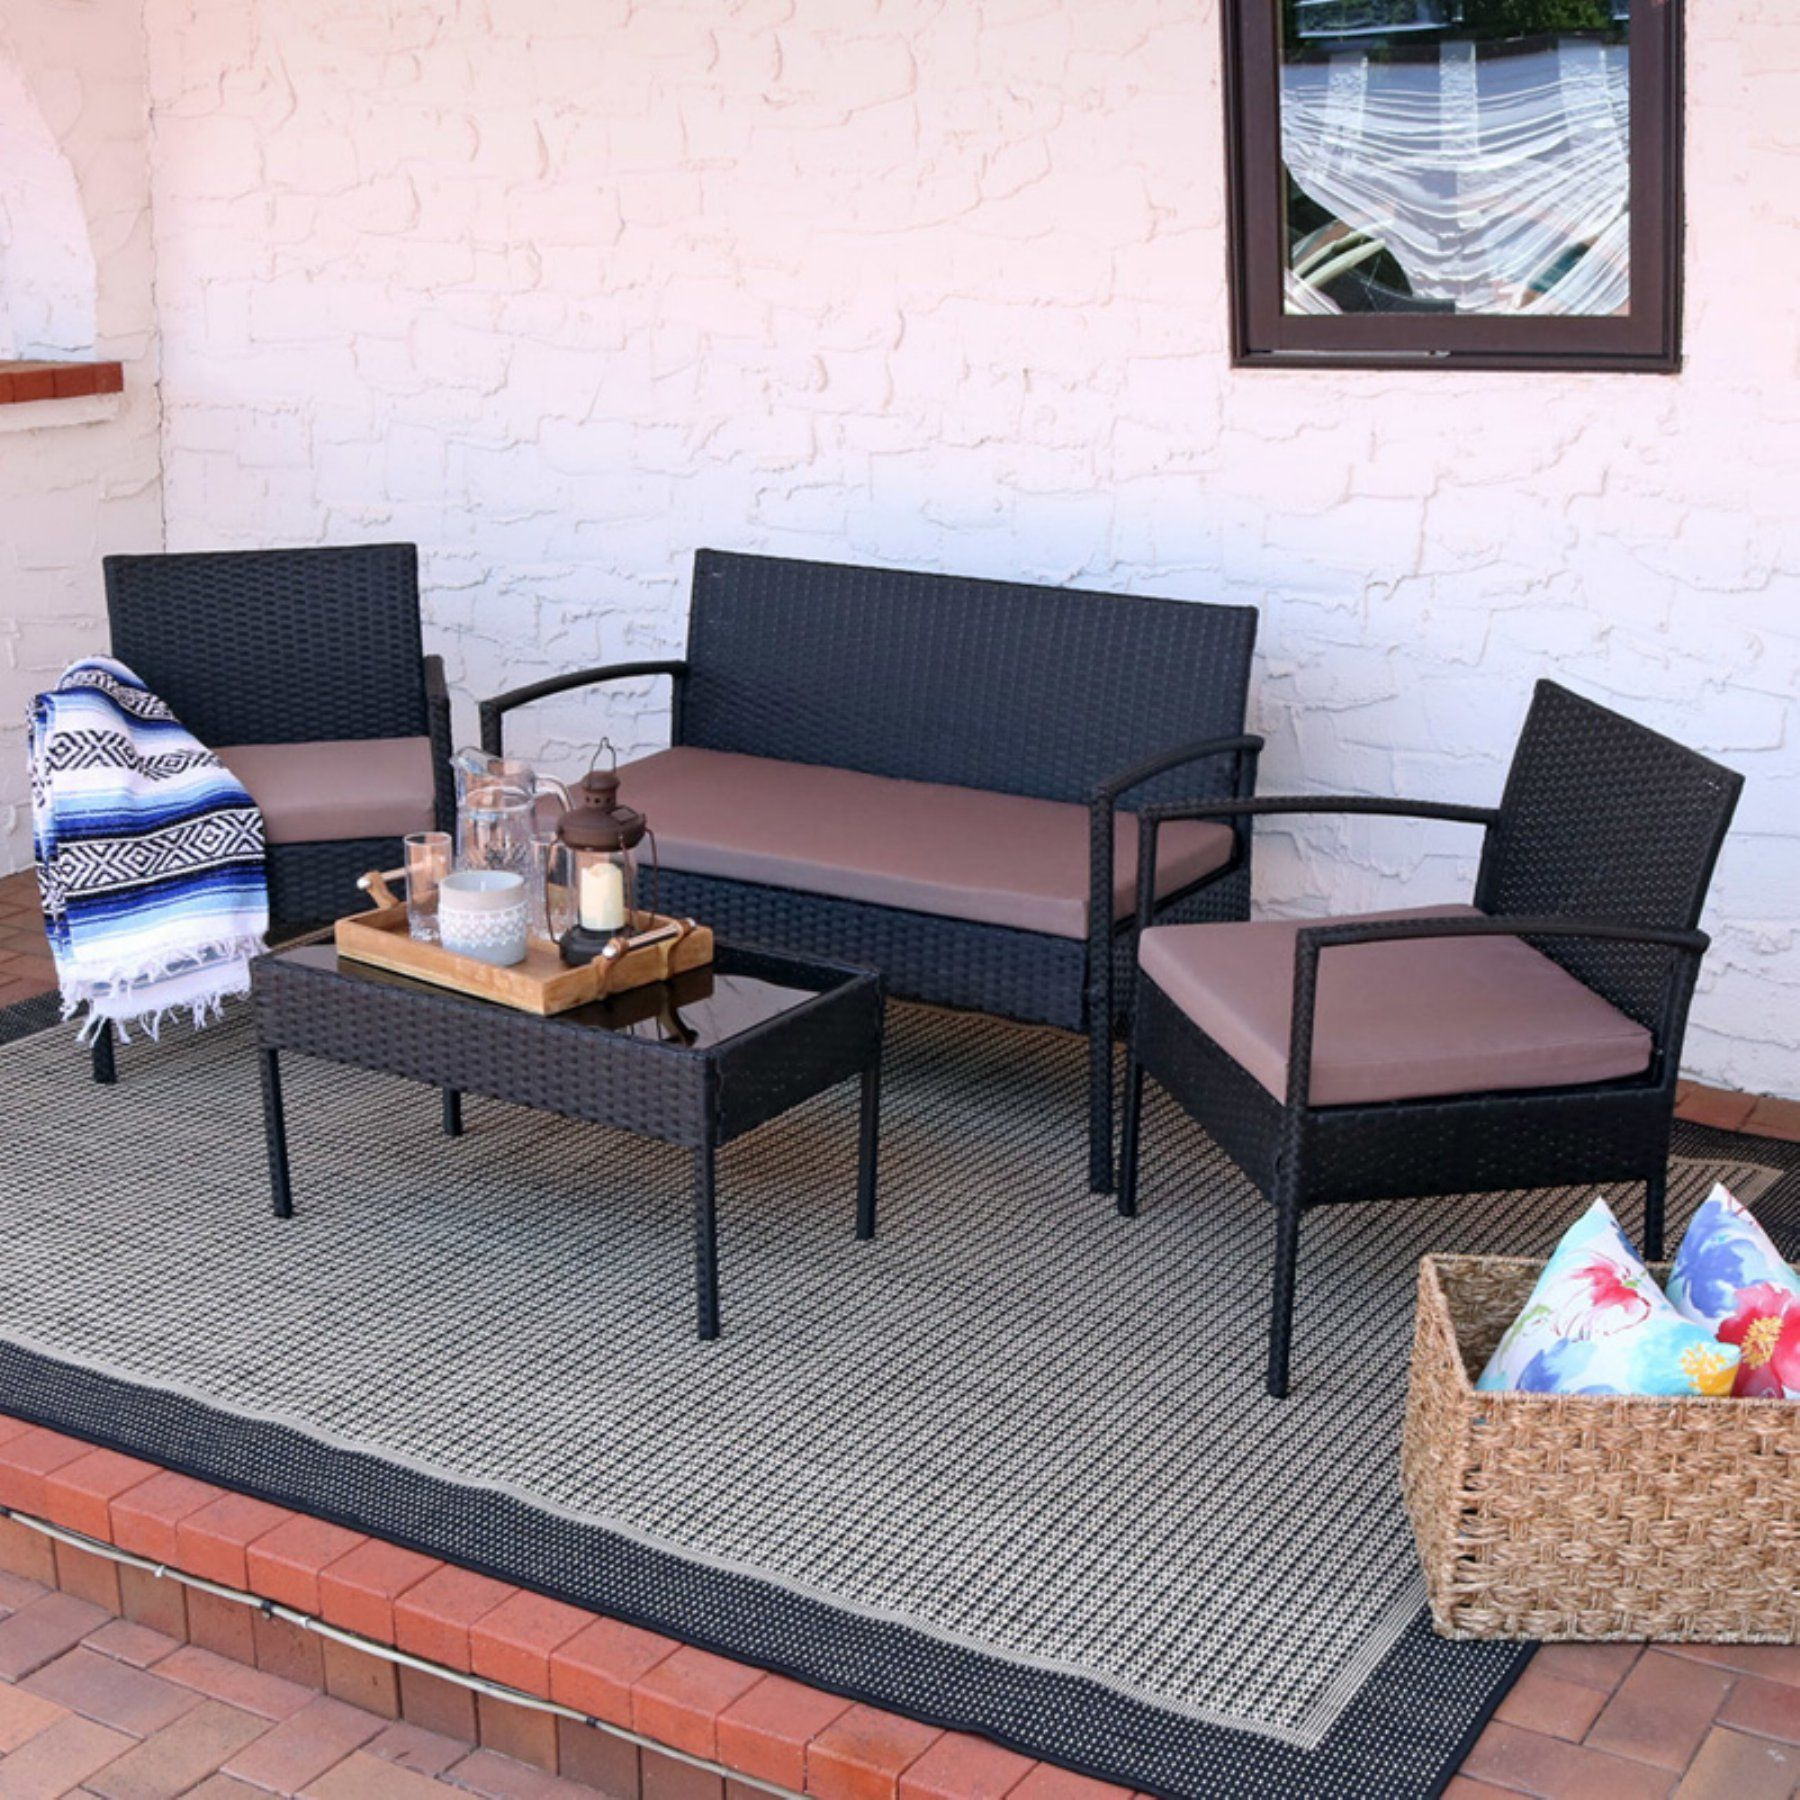 Outdoor Sunnydaze Decor Anadia Rattan Wicker 4 Piece Patio